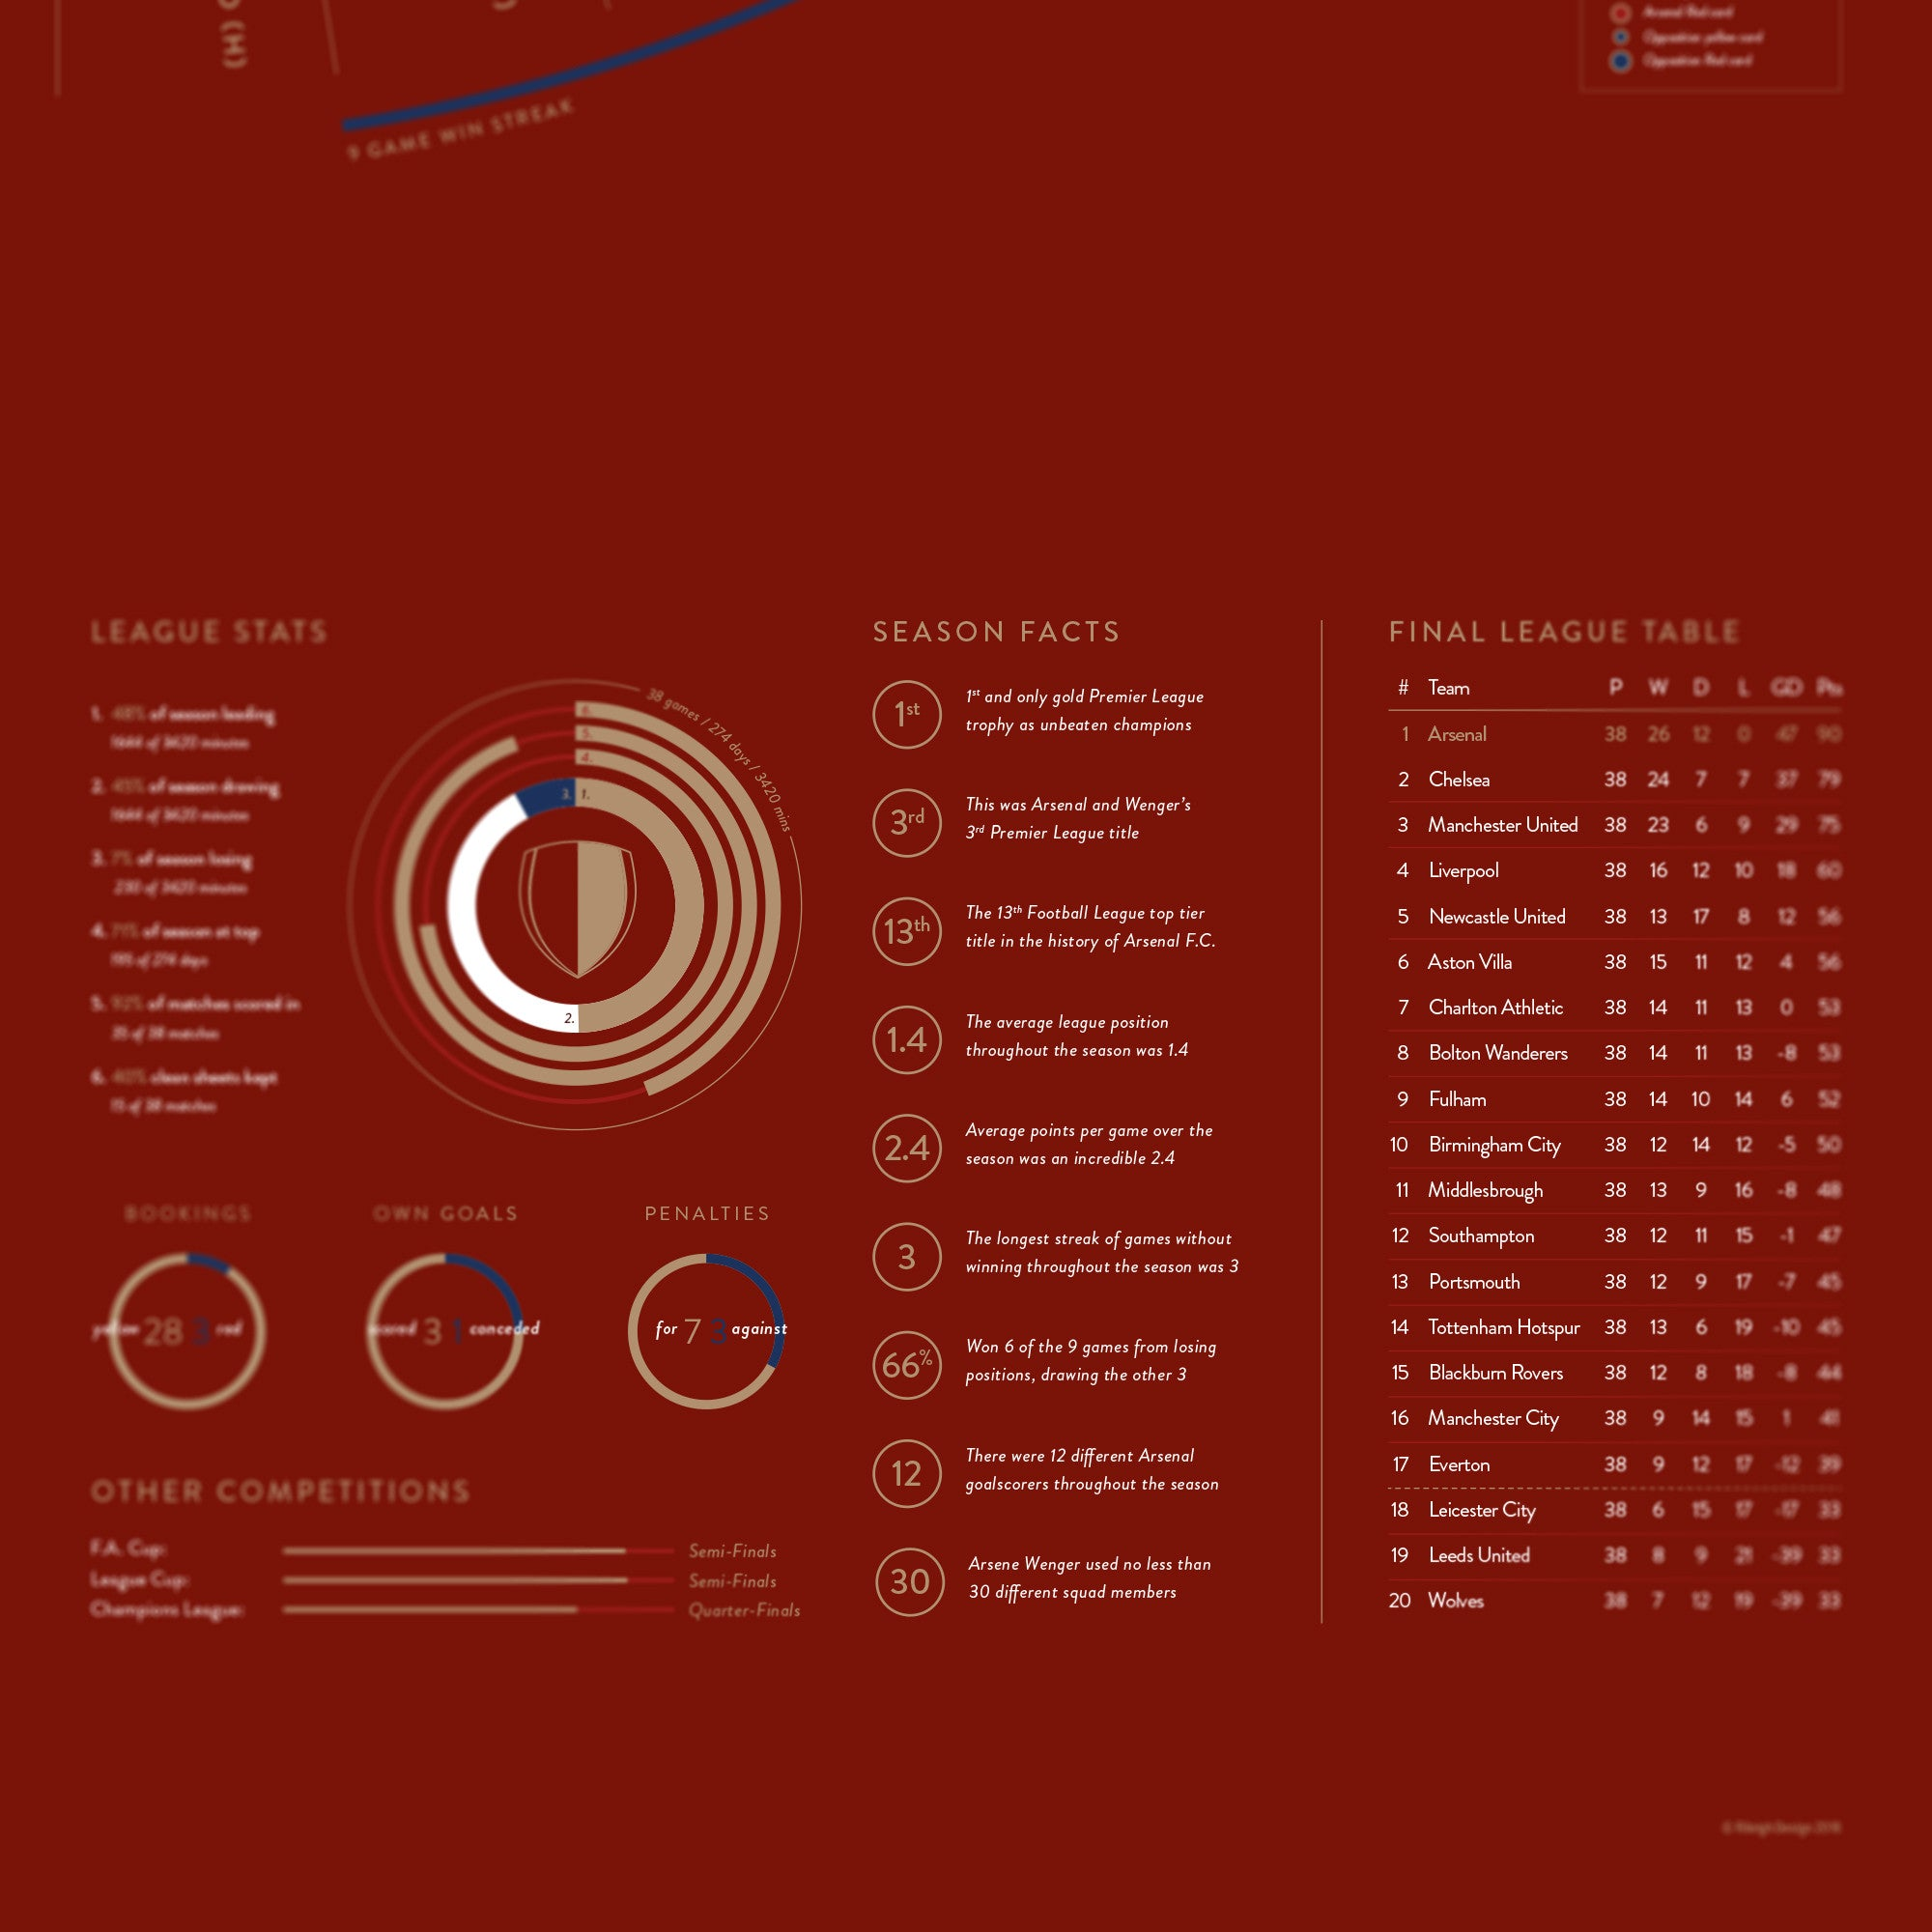 The Invincibles: Arsenal 2003/04 Premier League Champions Print – Made By Rileigh